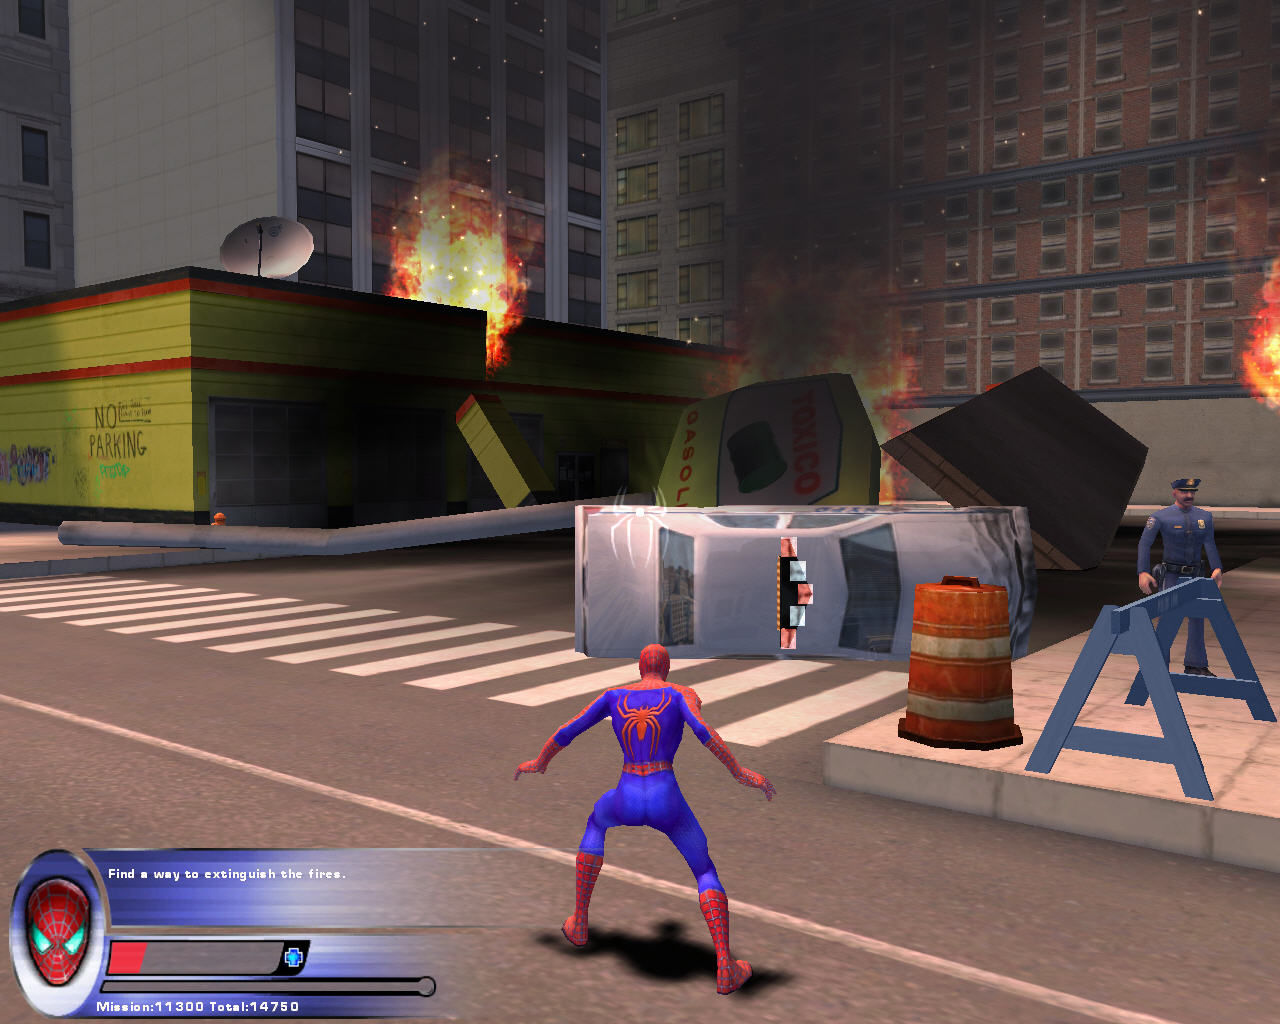 Spider-Man 2: The Game Windows Spider-Man must find a way to extinguish fire.